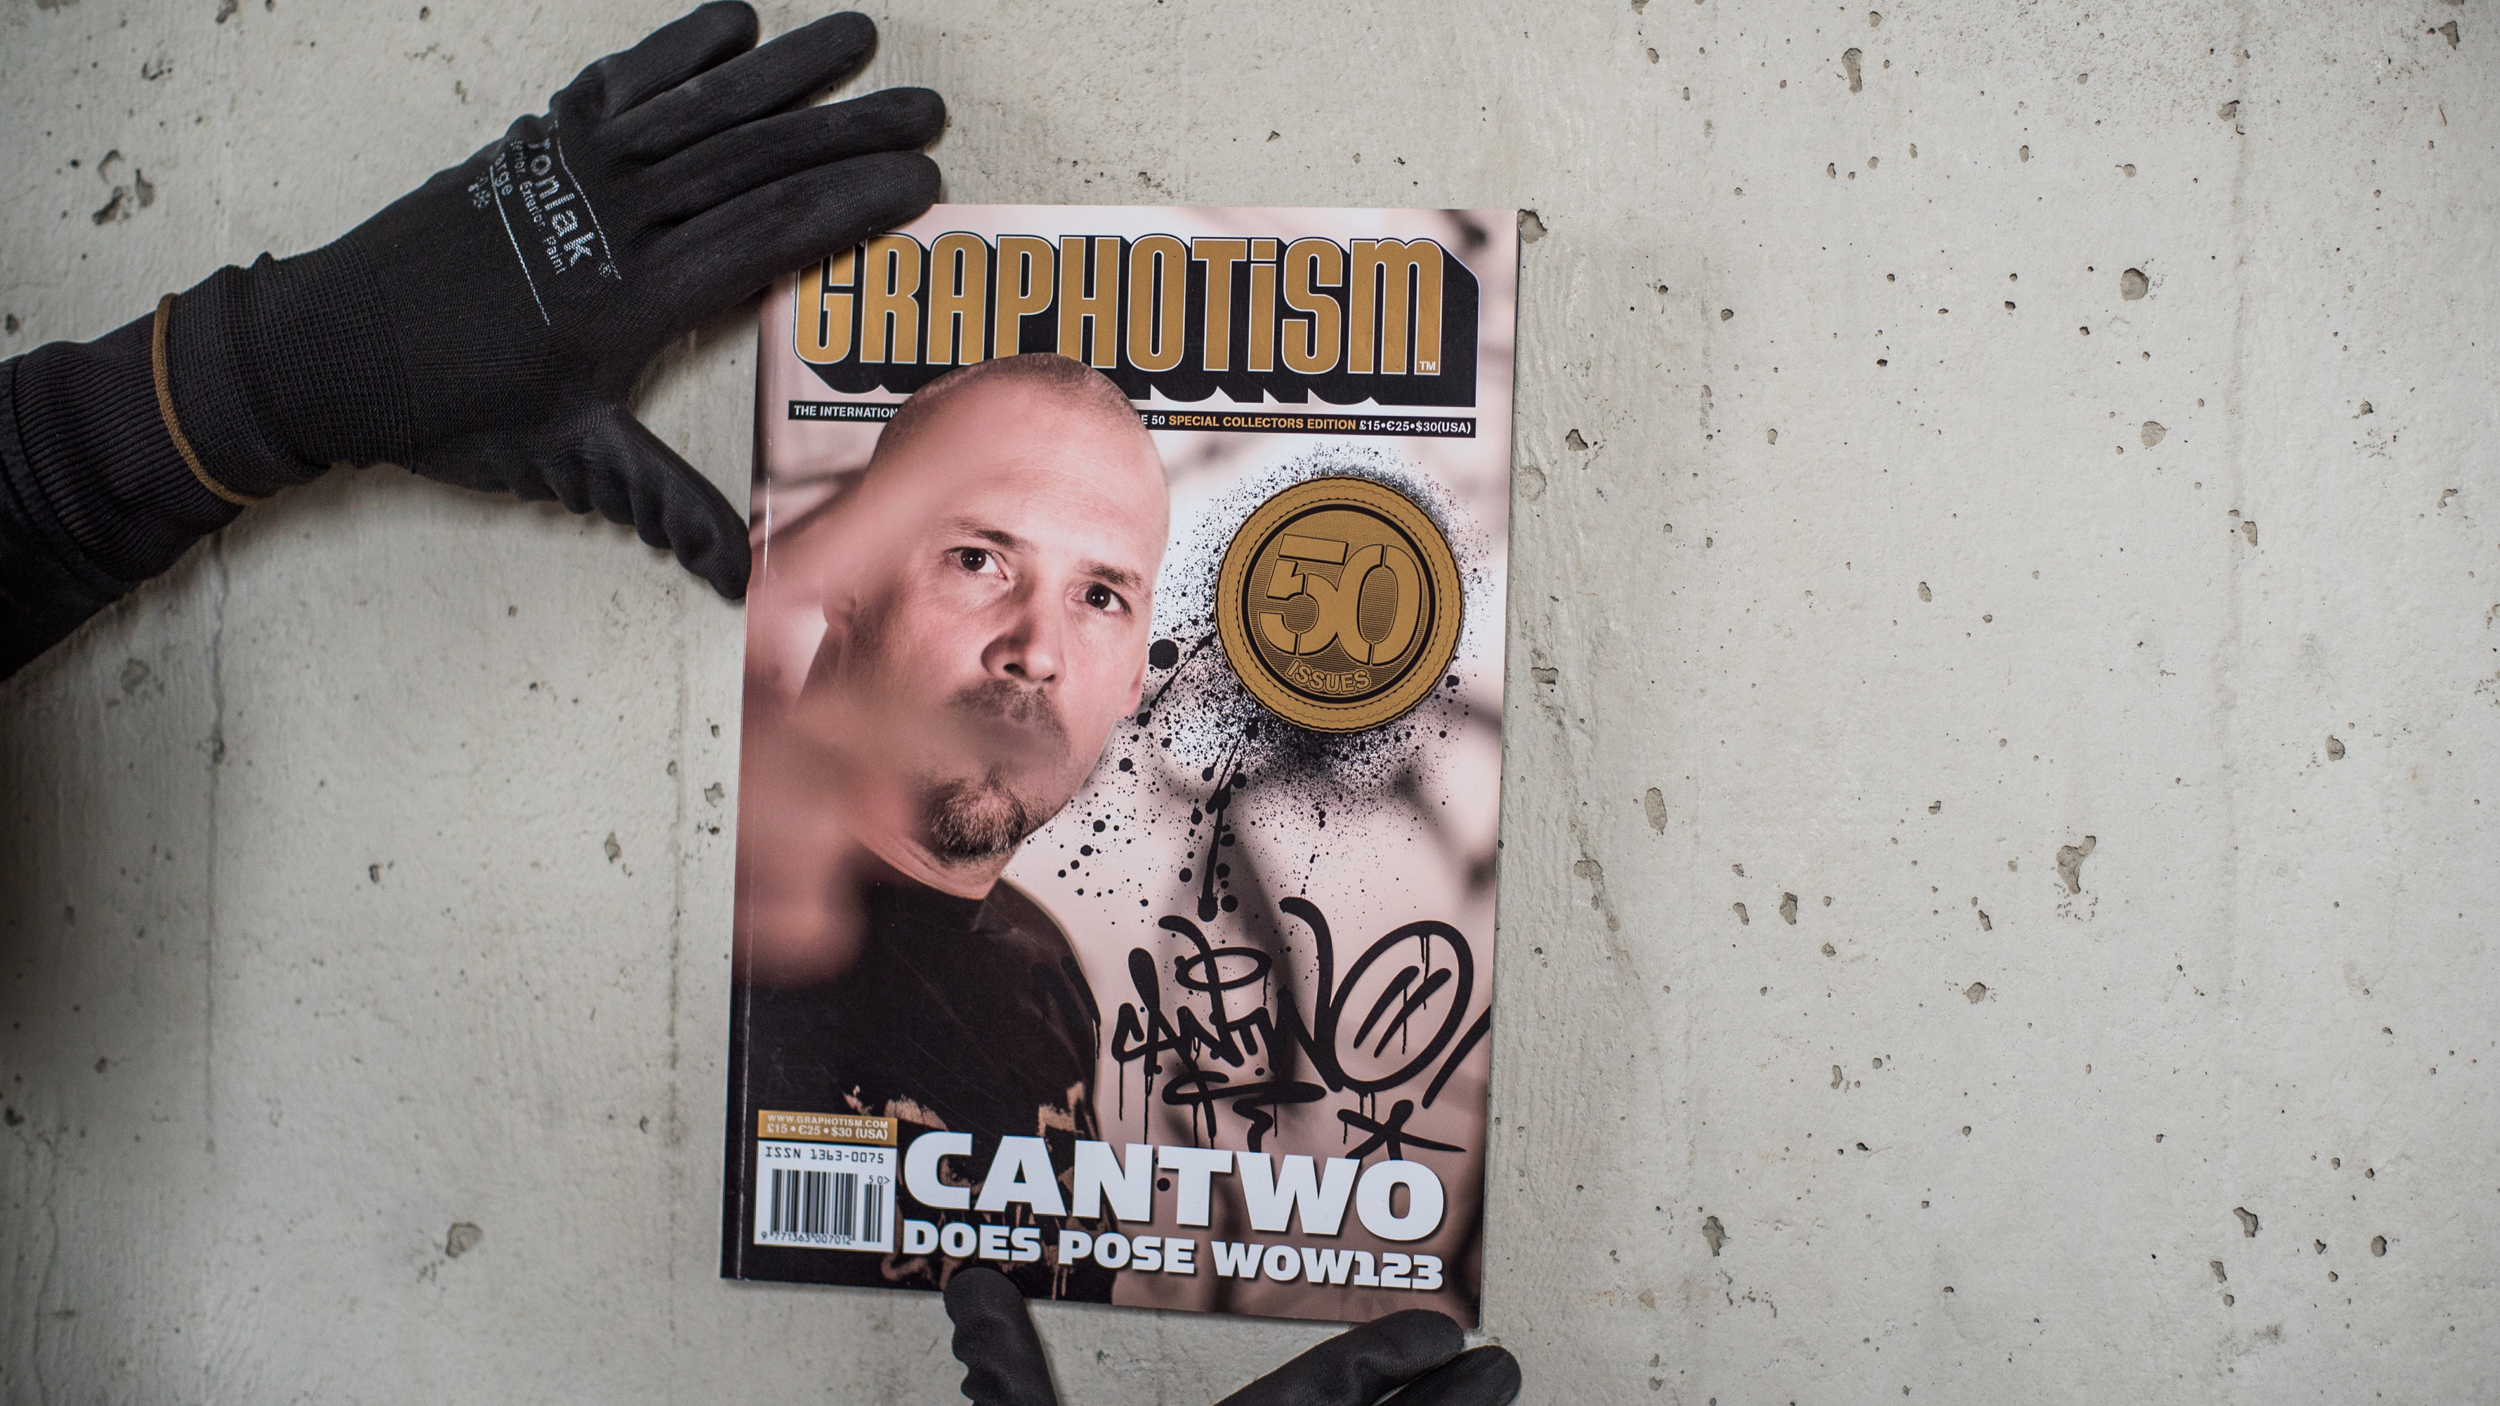 A work by Does - Book magazine graphotism 50 cover